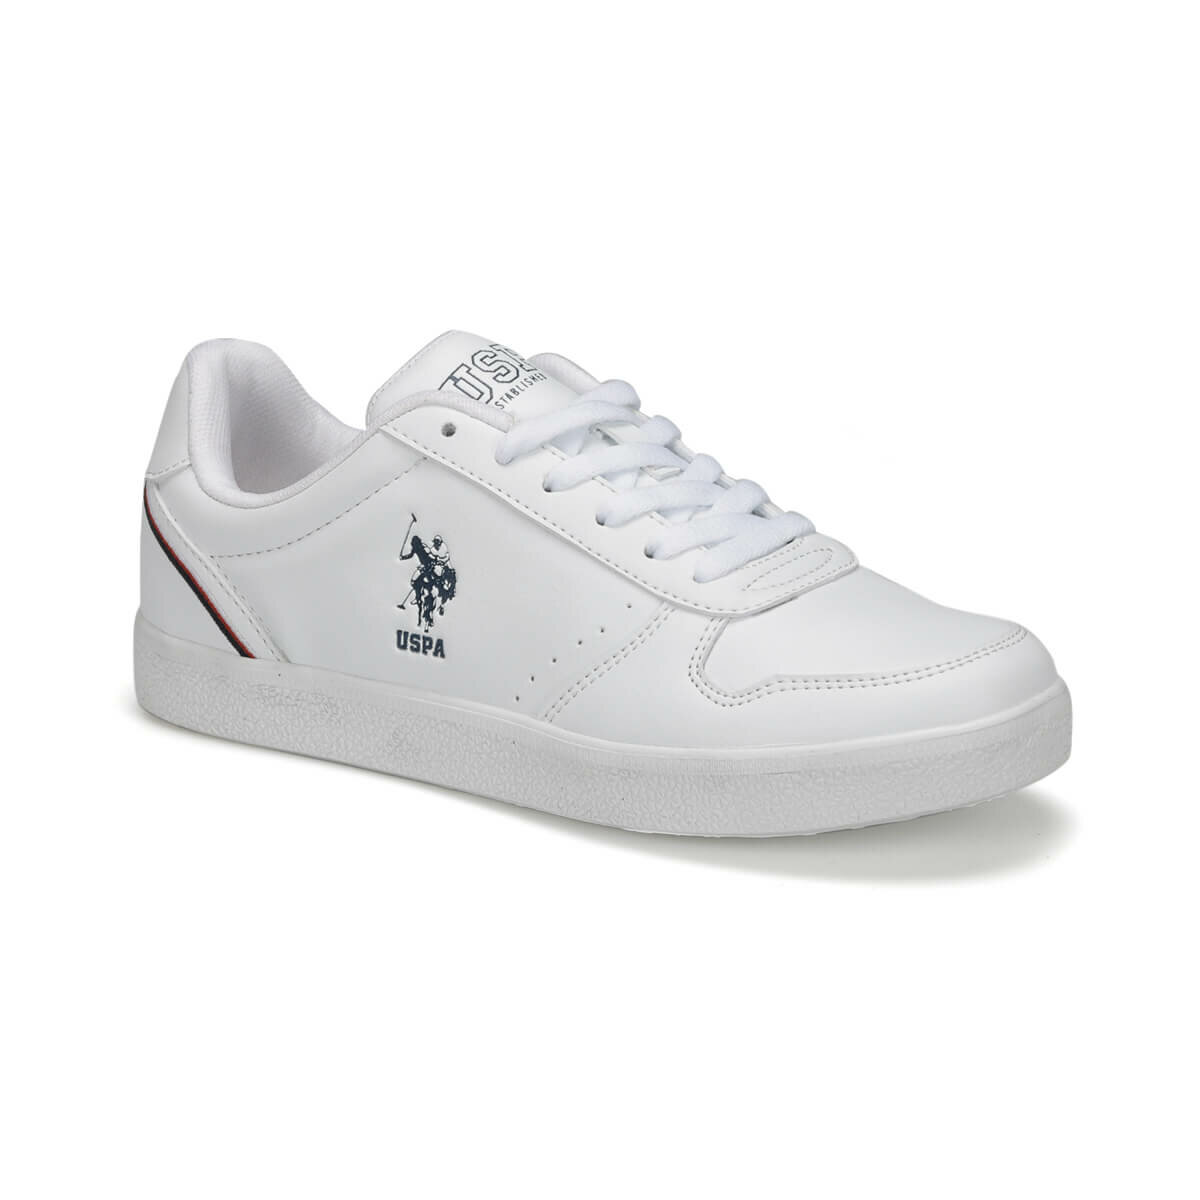 FLO JACKSON 9PR White Women 'S Sneaker Shoes U.S. POLO ASSN.